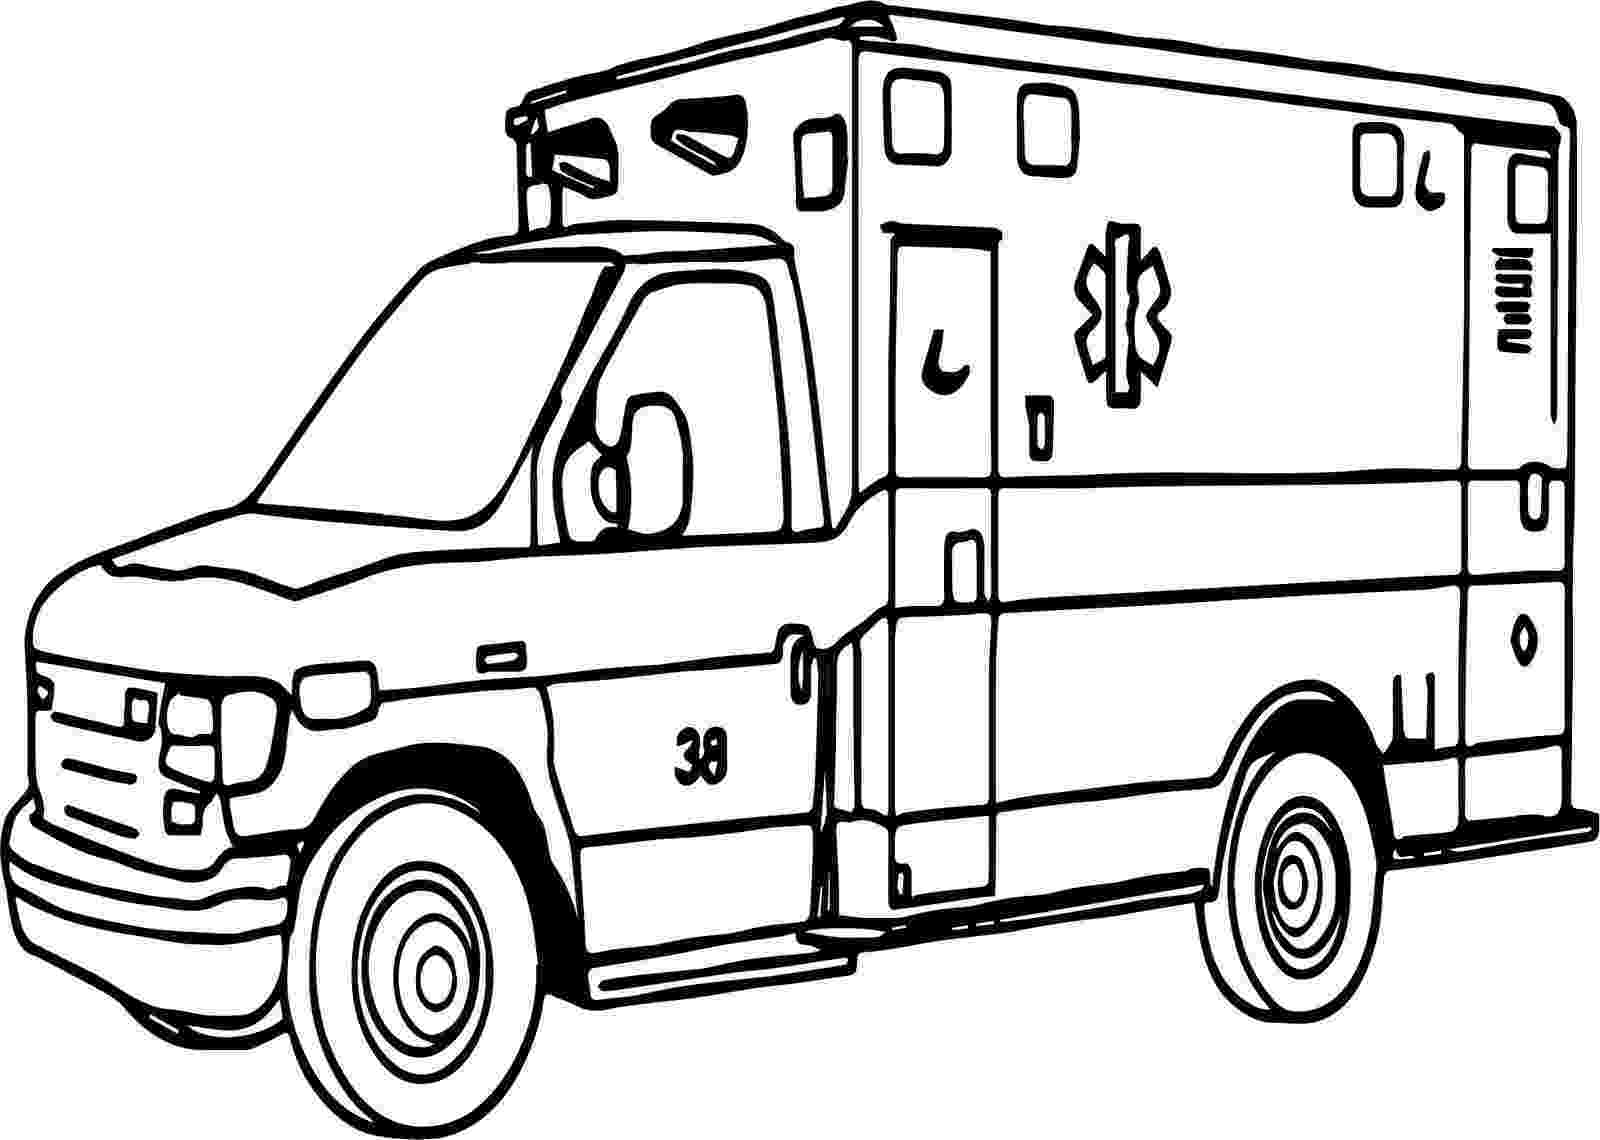 ambulance pictures to color realistic ambulance coloring pages realistic coloring pages to pictures color ambulance